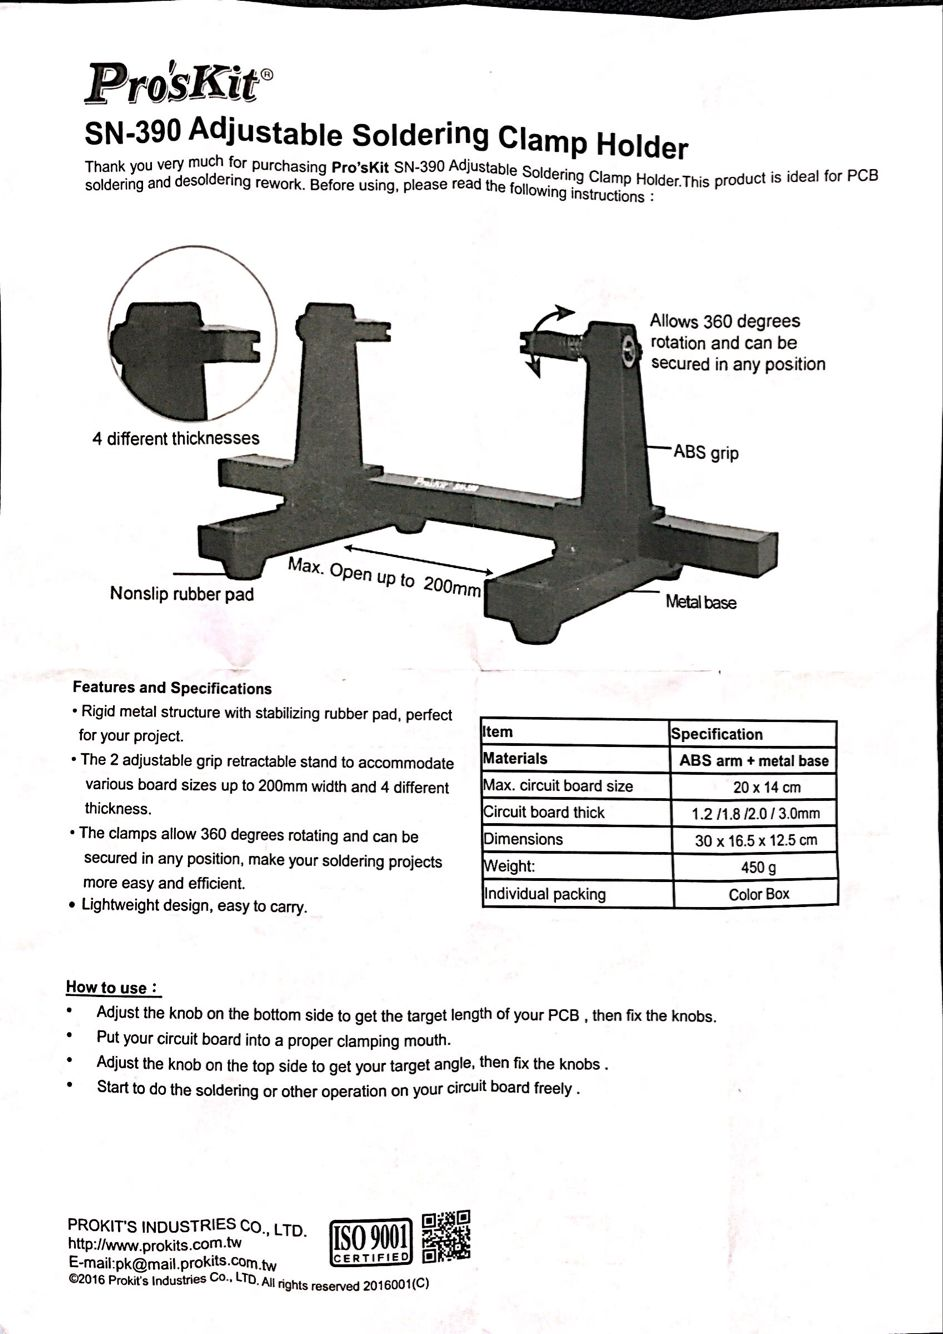 Proskit Adjustable Pcb Holder Printe End 9 13 2019 215 Pm Details About Metal Circuit Board Repairing Repair Tool For Maximum Clamping Size 20 X 14cm 787 551inchlw Thickness 12mm 005 18mm 007 20mm 008 3mm 012 30 165